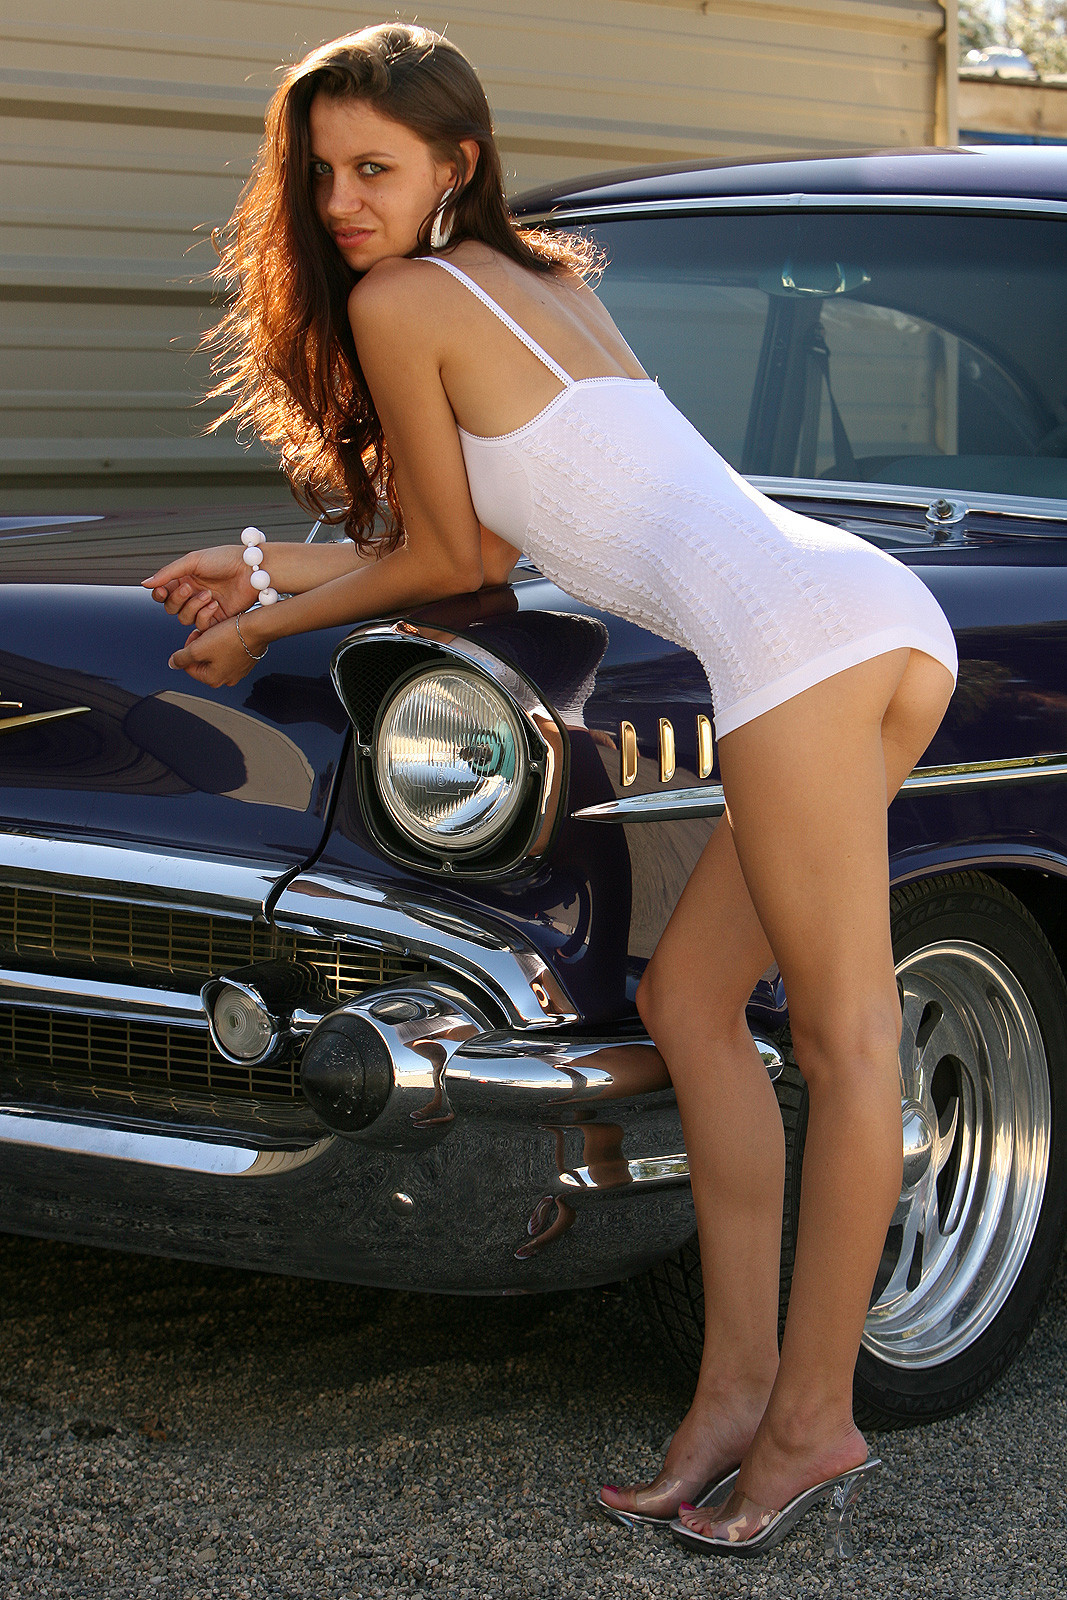 Nude car video Nude Photos 97